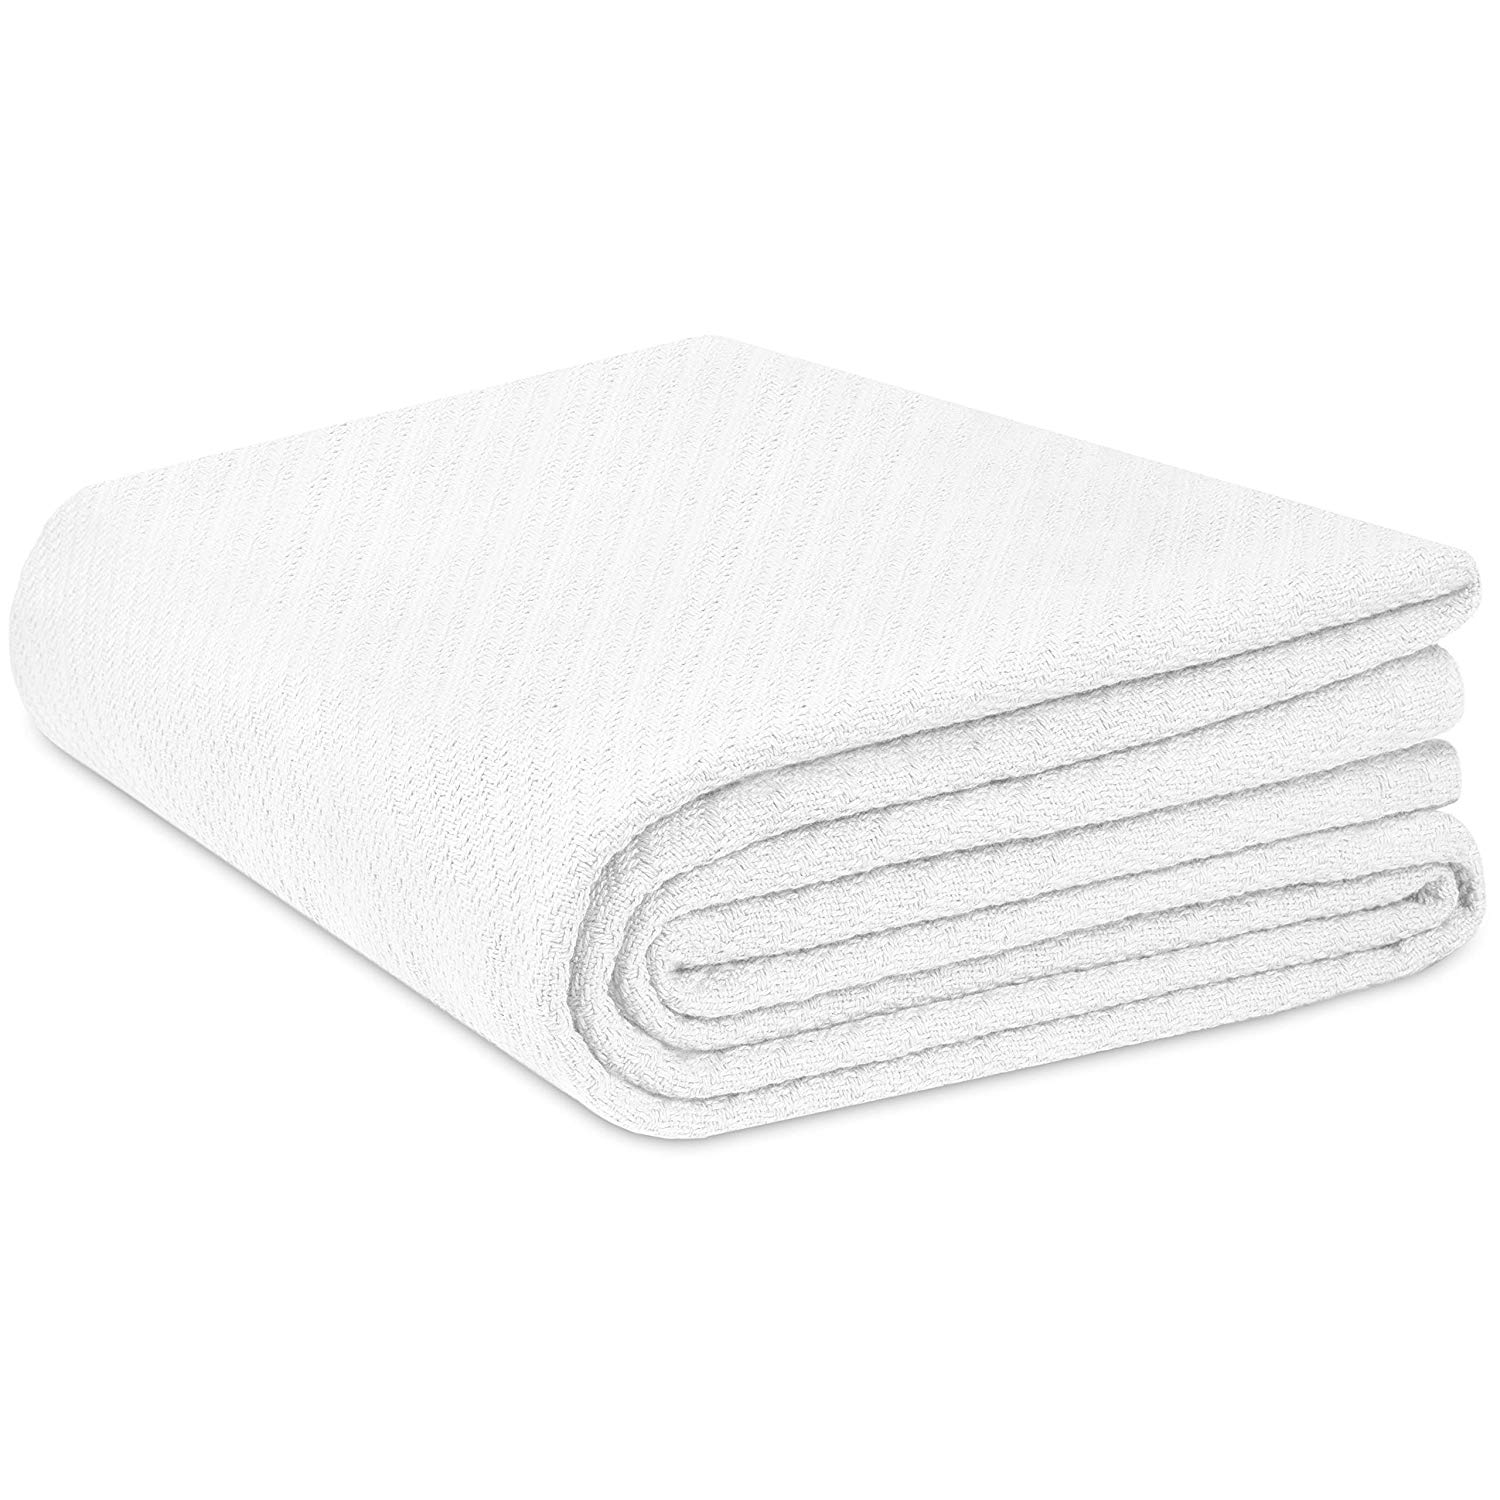 for Bedroom 100/% Cotton Blankets Waffle Weave Design Soft Premium Breathable Thermal Blankets Provides Comfort and Warmth for All Years Camping Travel